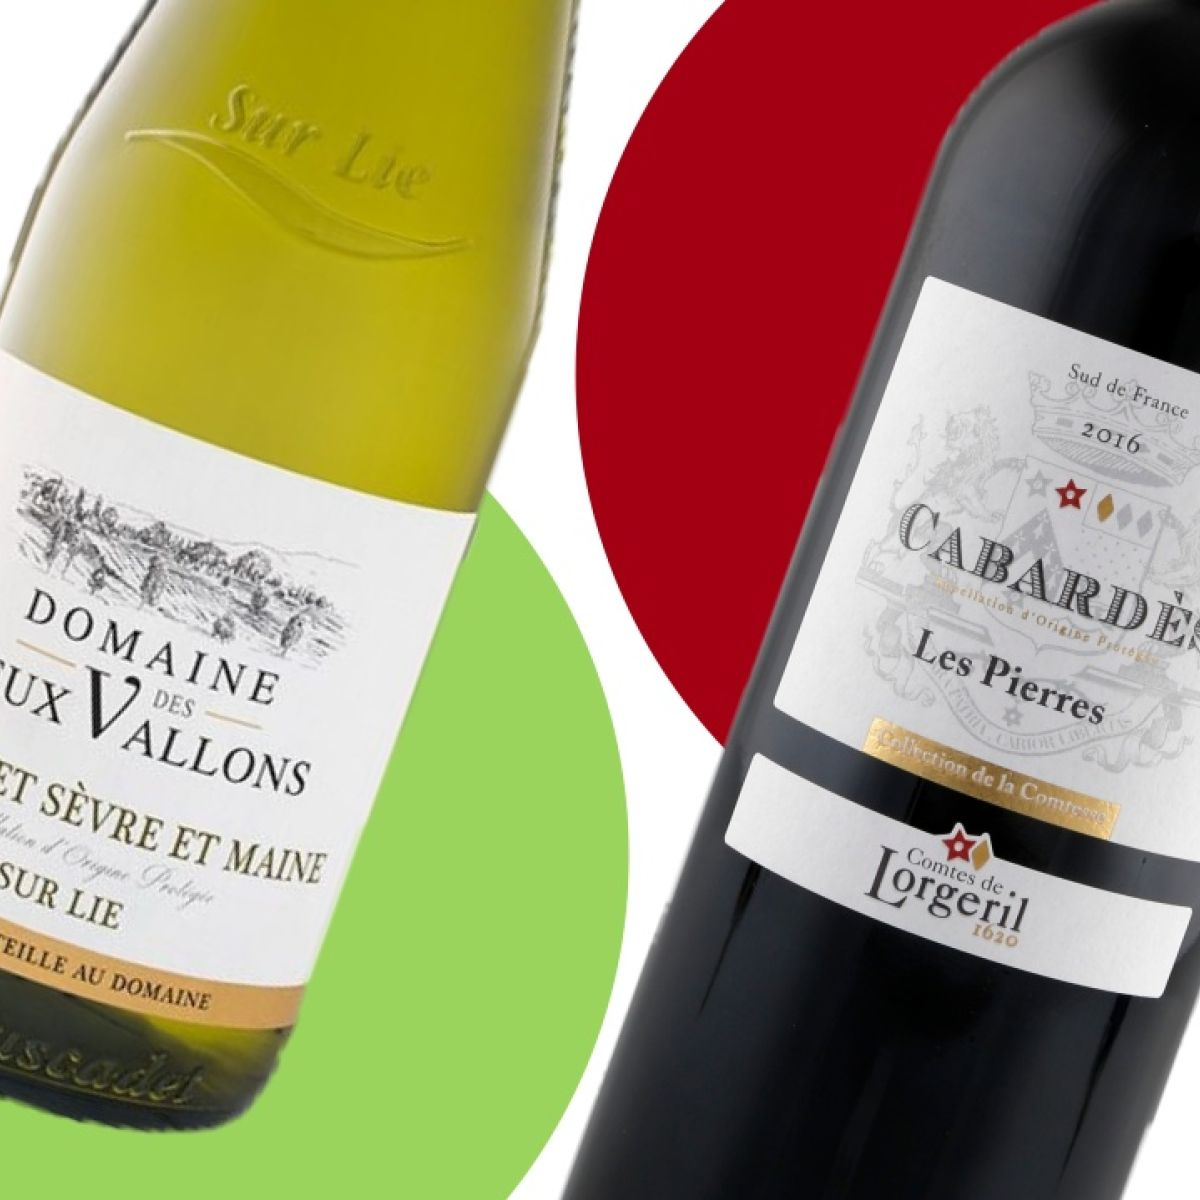 Two Bottles For Less Than 10 In Lidl S French Wine Sale